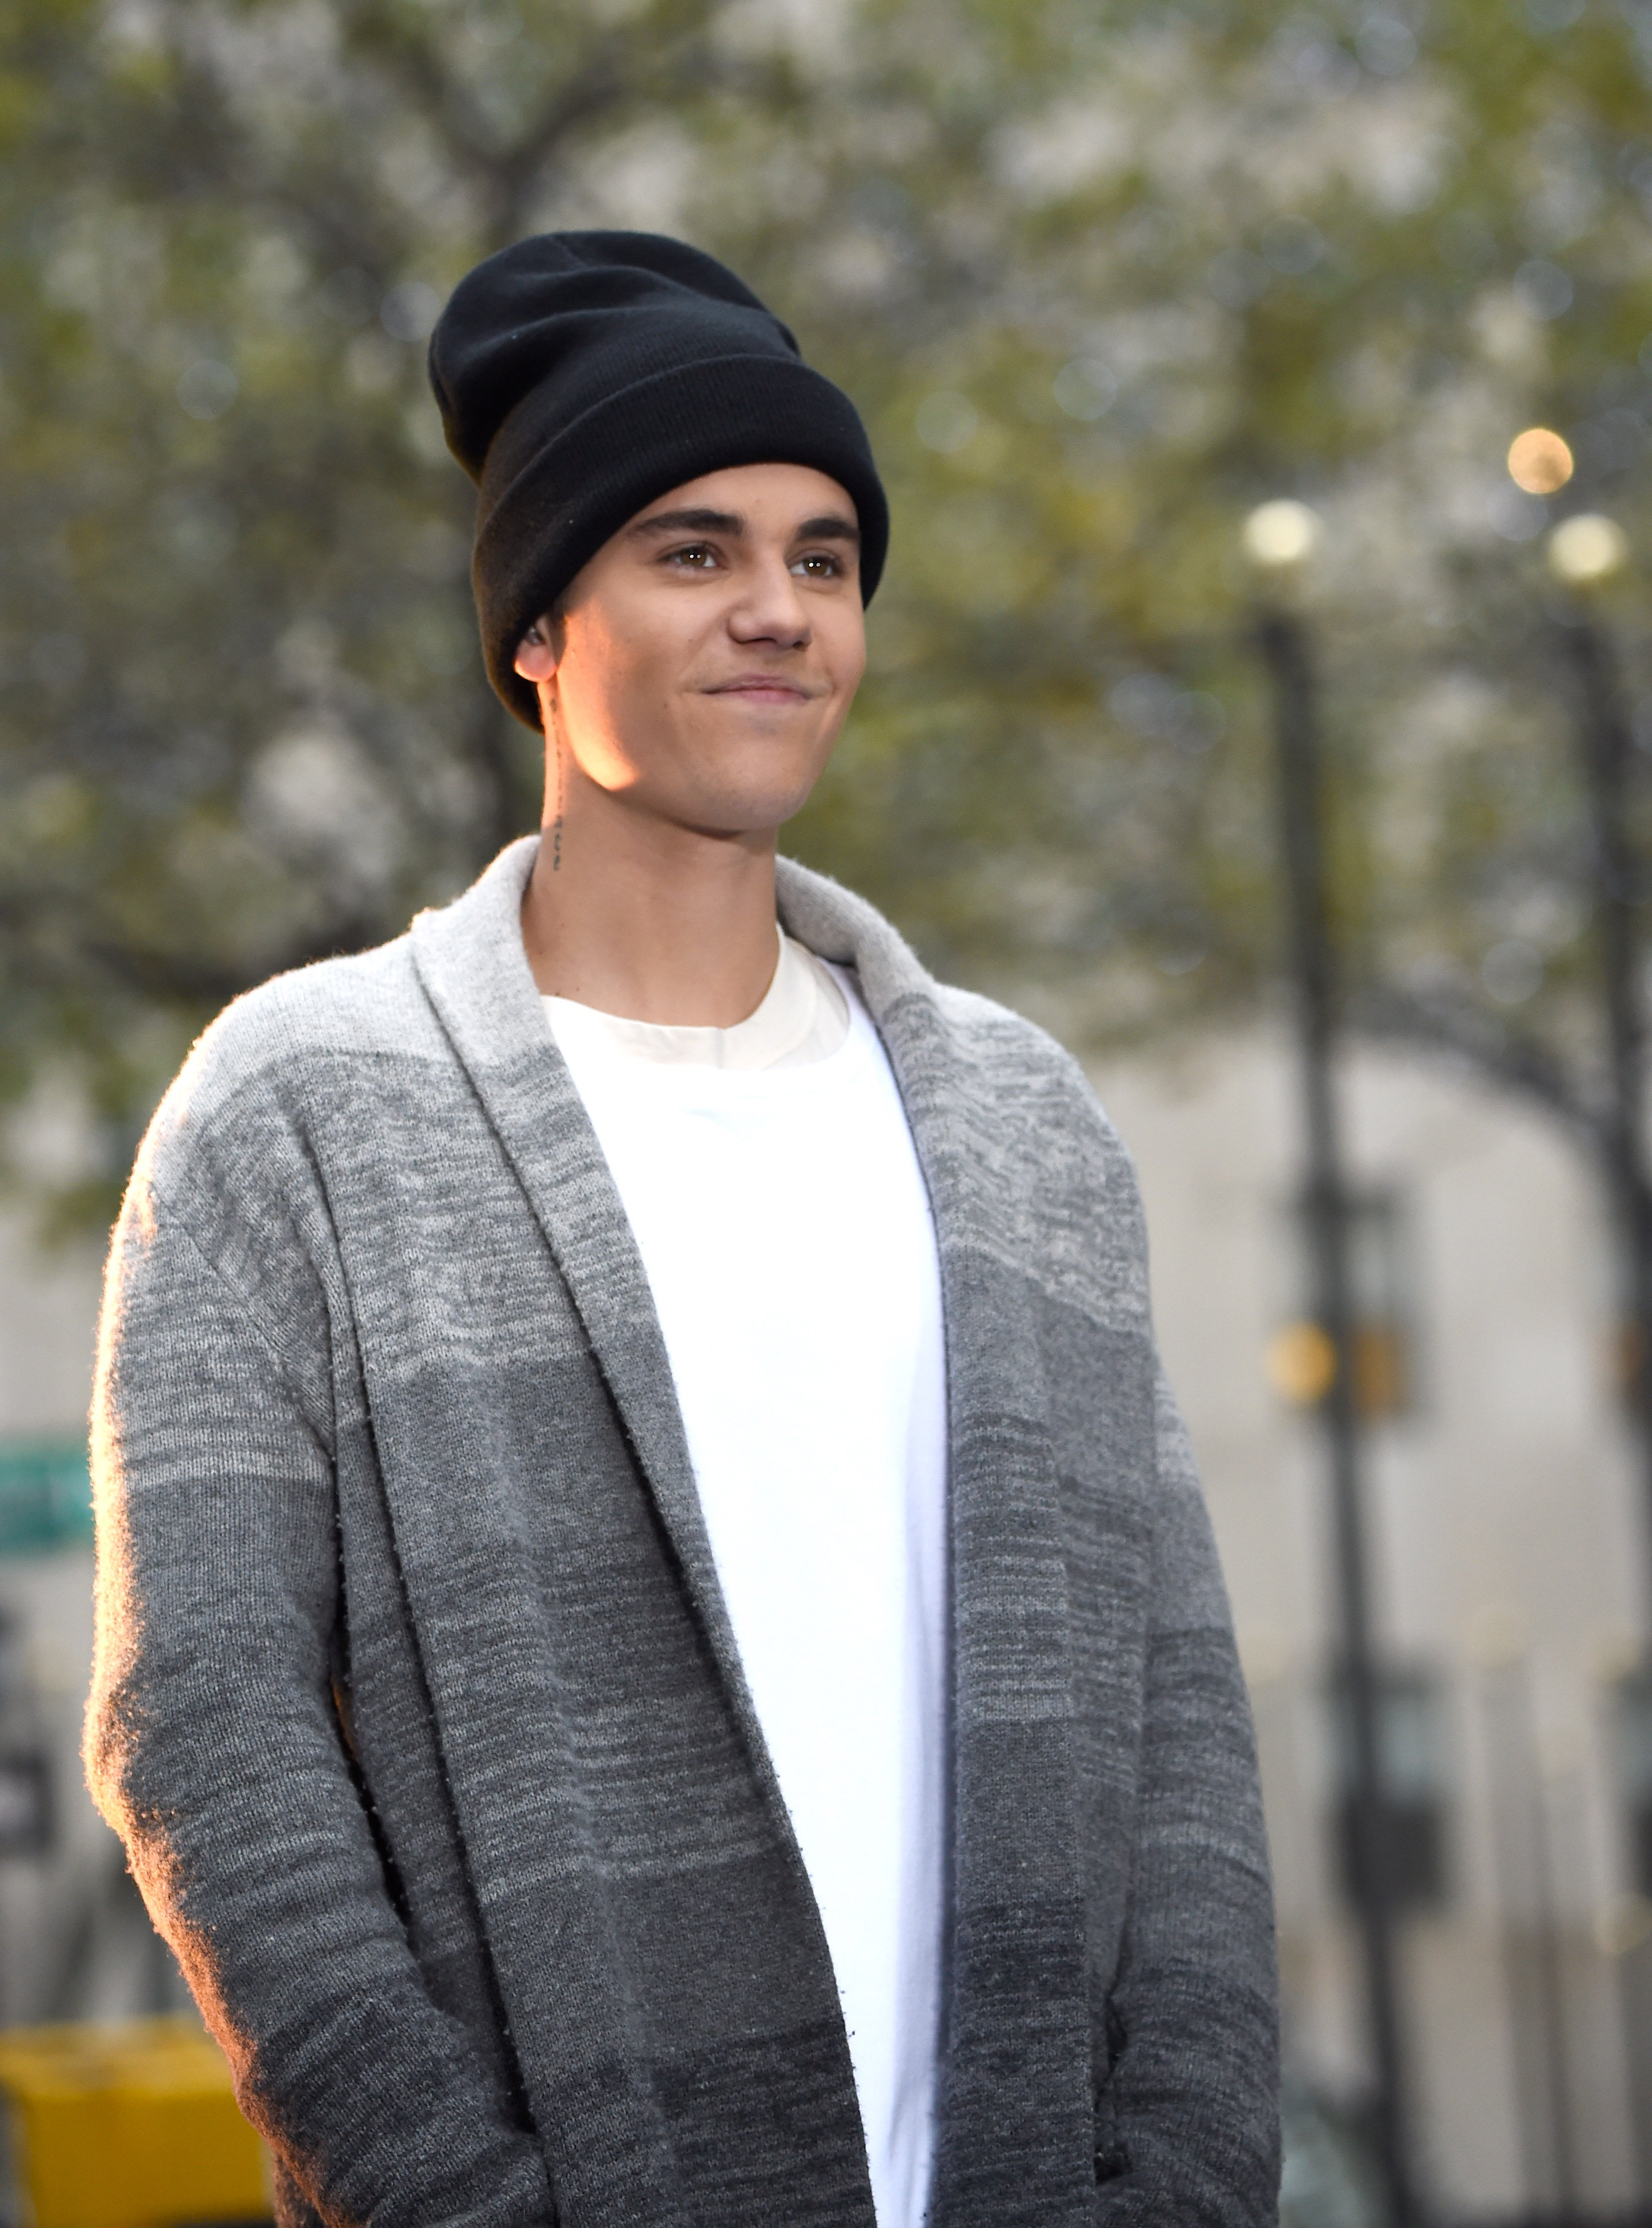 Justin Bieber performs on the Citi Concert Series on TODAY at Rockefeller Center on November 18, 2015 in New York City | Photo: Getty Images